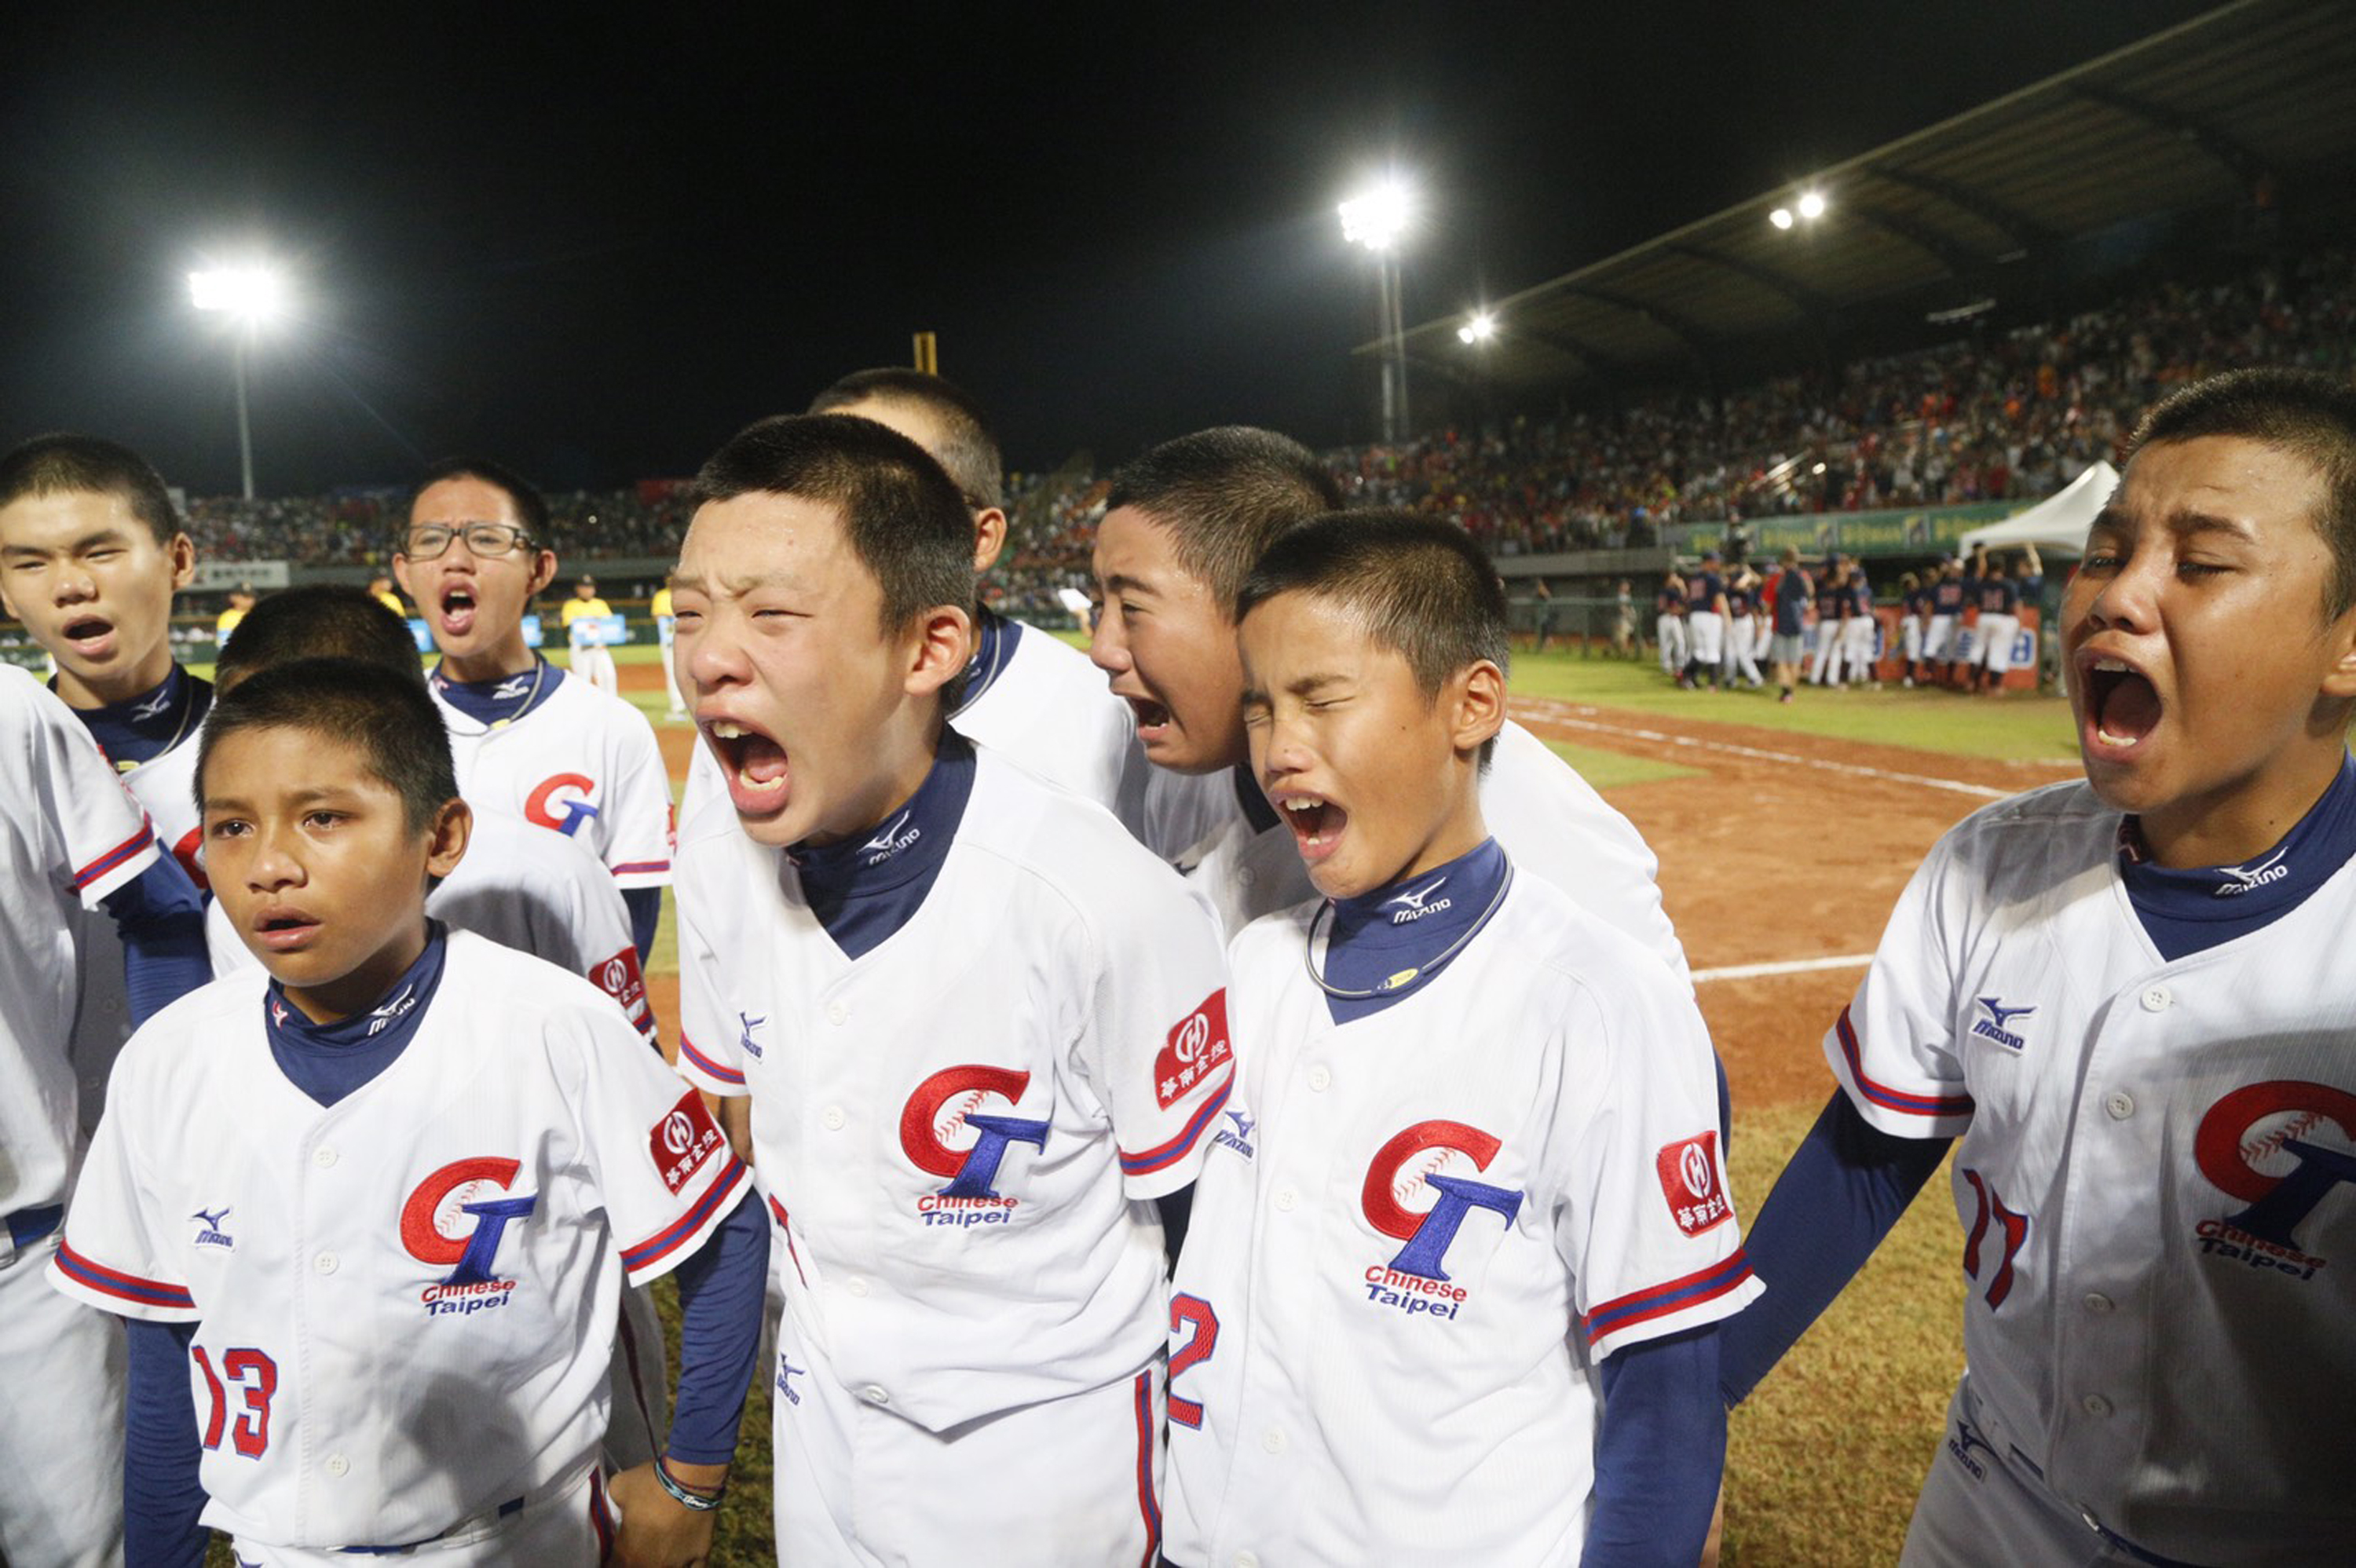 Taiwanese players cry after losing to US in U12 Baseball World Cup final.